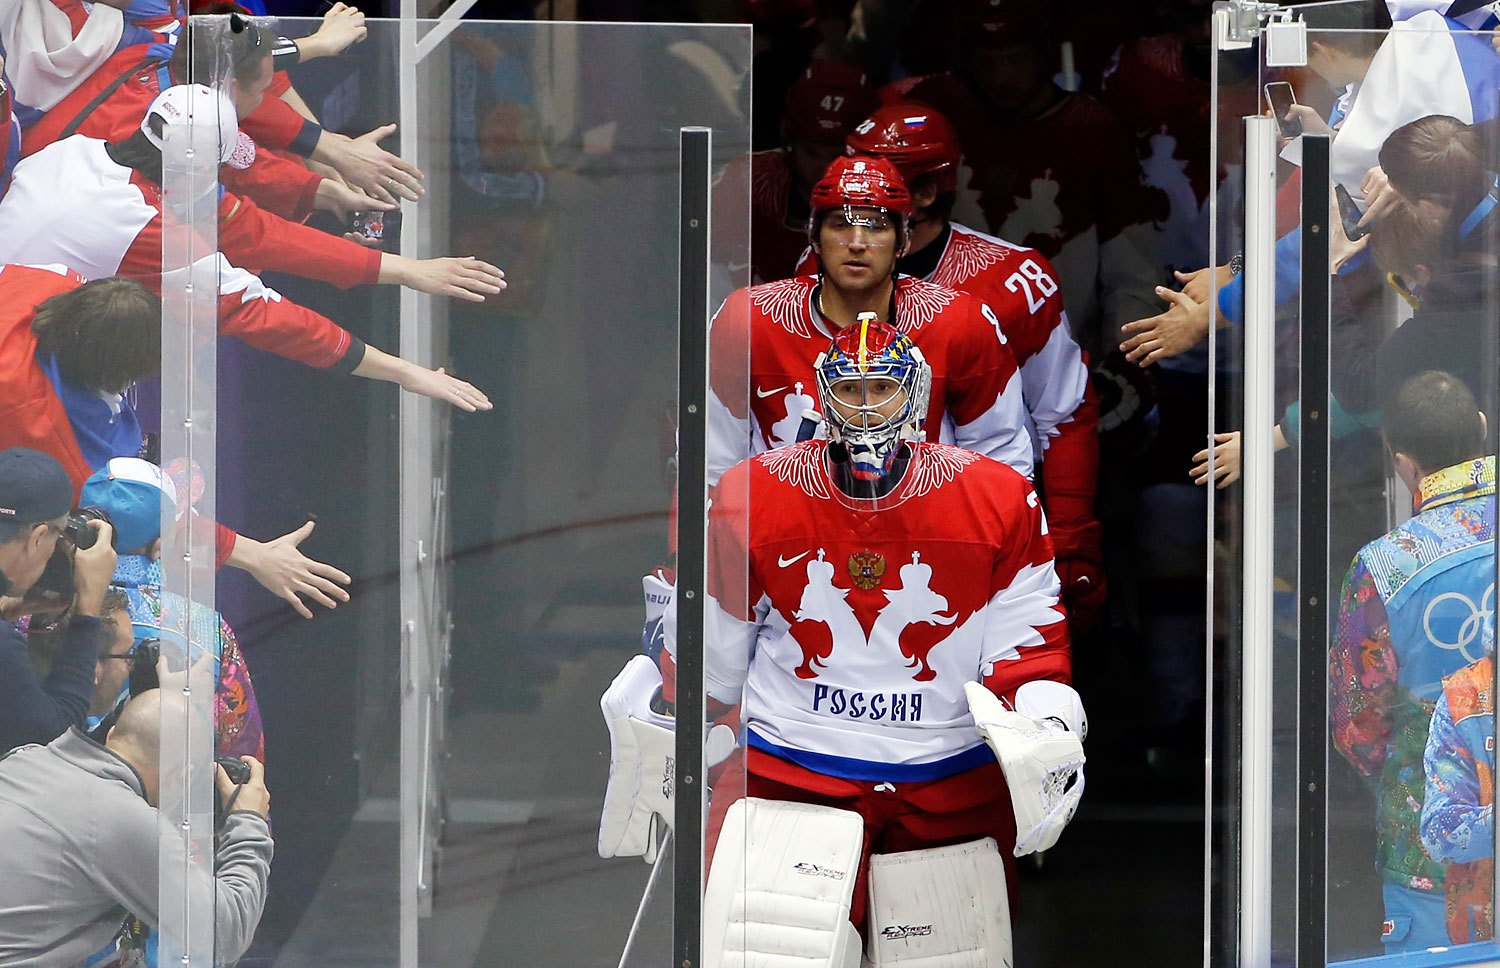 Russia goaltender Semyon Varlamov and Russia forward Alexander Ovechkin lead the Russian team onto the ice for warmups before playing the USA.